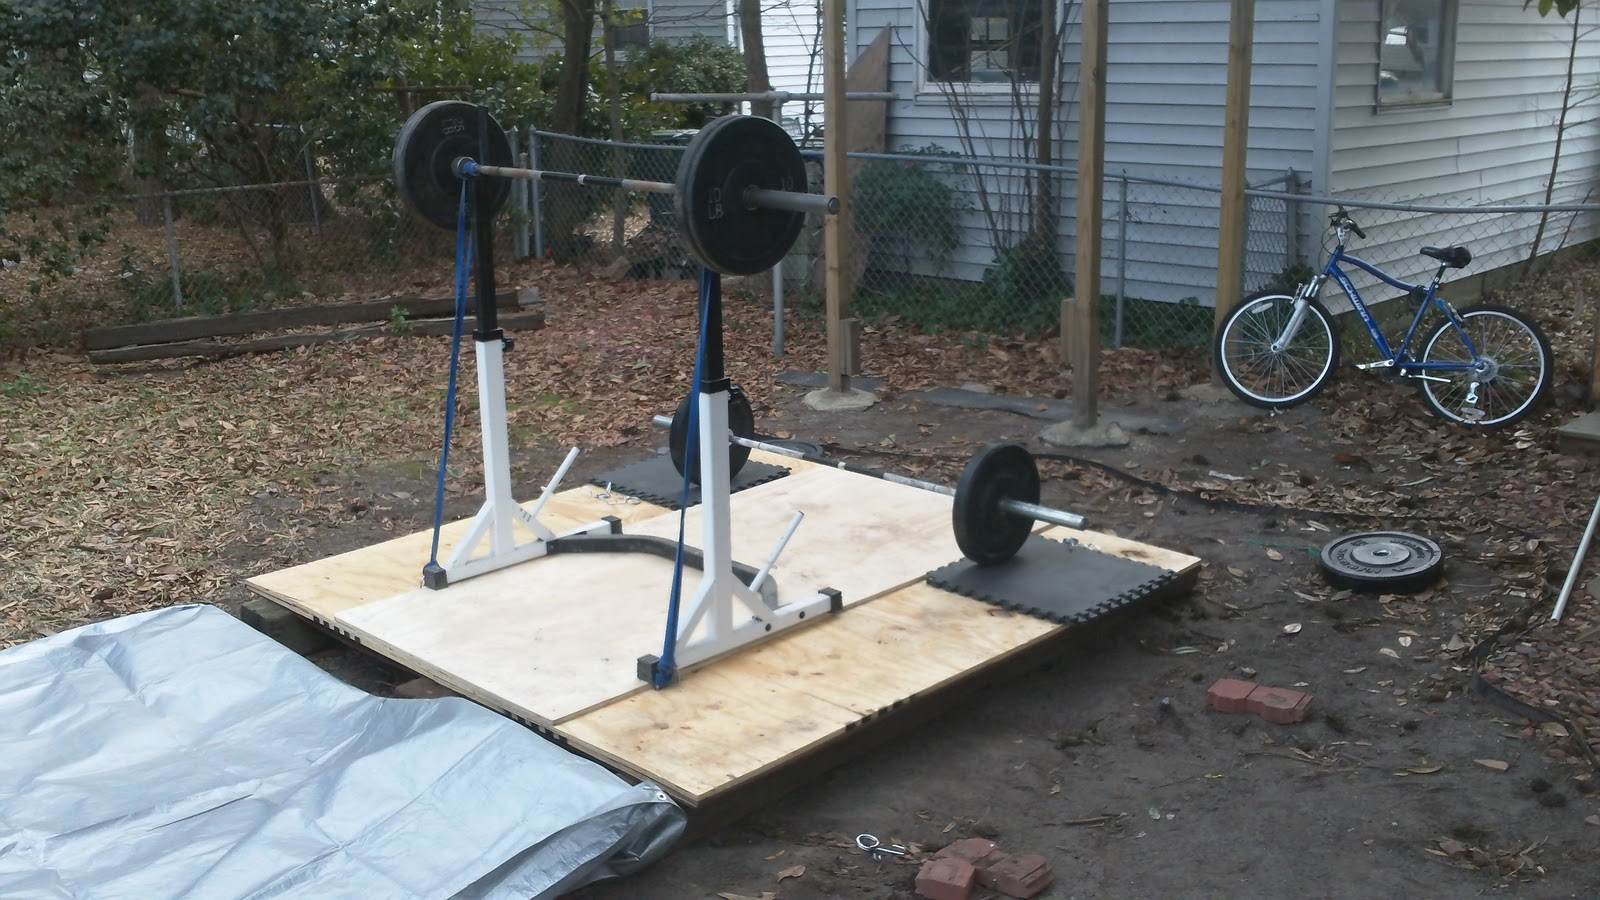 Superbe Benu0027s Backyard Gym